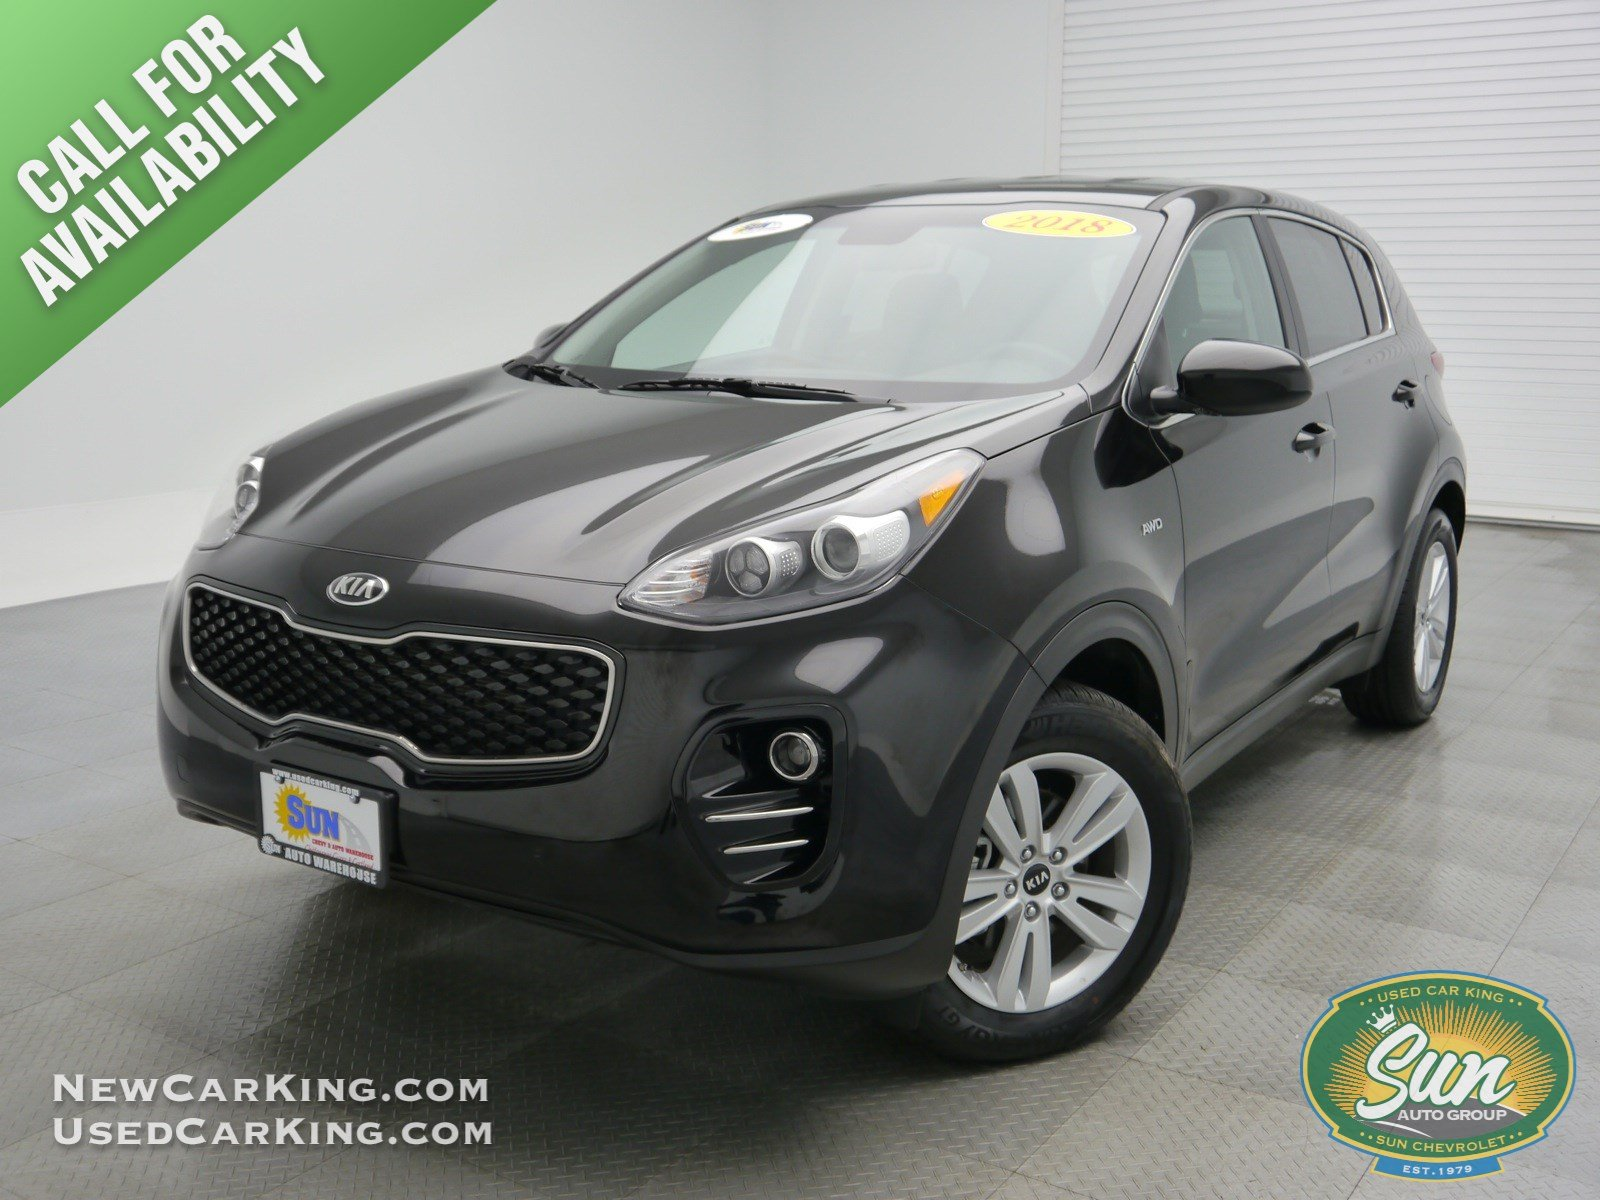 utility awd kia suv sport nampa inventory vehicle new in sportage at the kendall ex